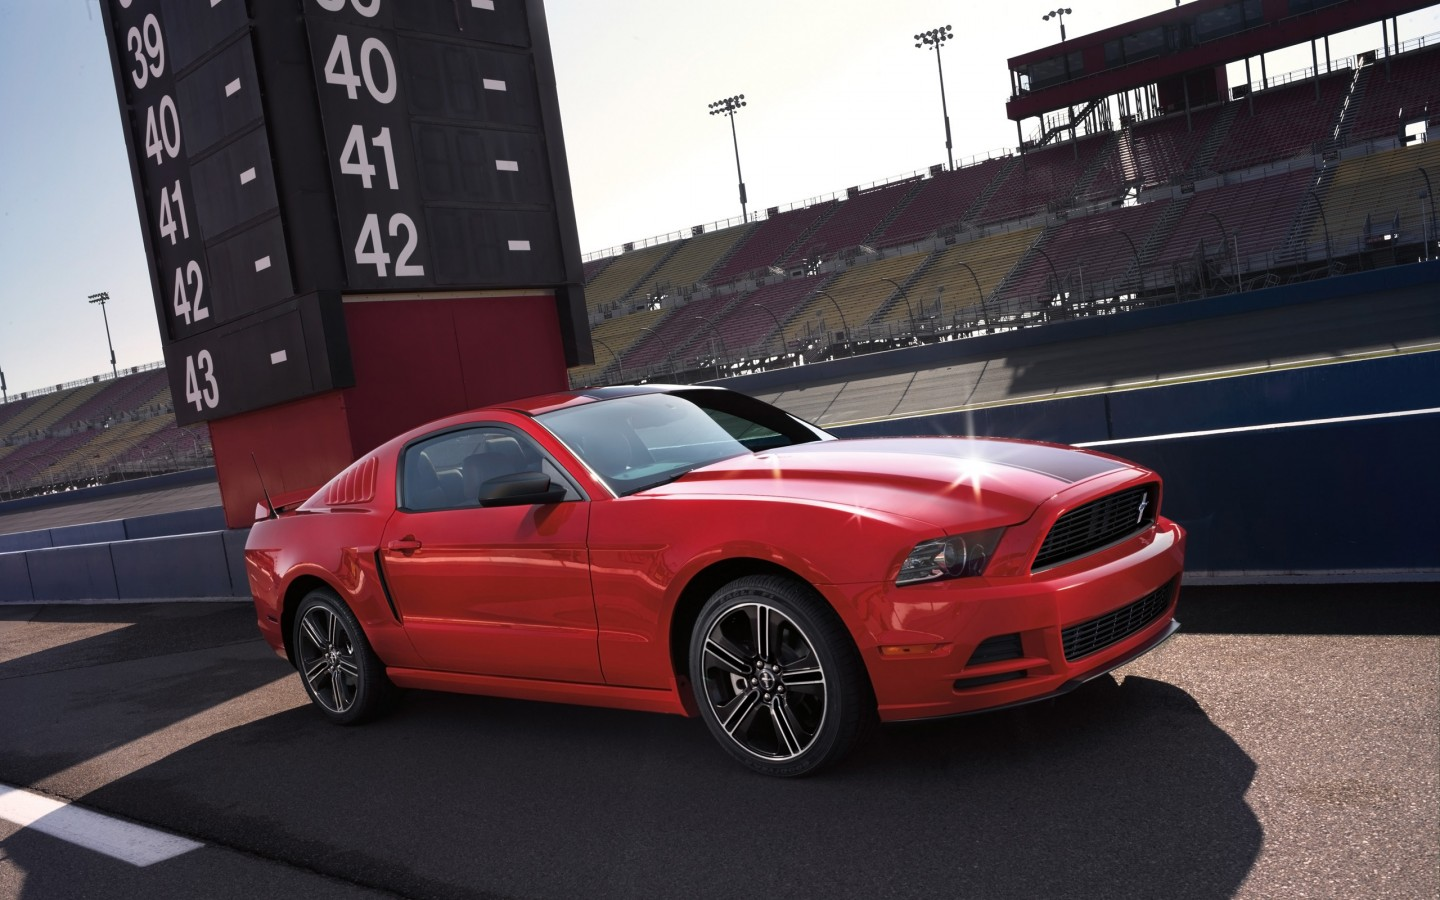 2014 ford mustang gt wallpaper hd car wallpapers. Black Bedroom Furniture Sets. Home Design Ideas